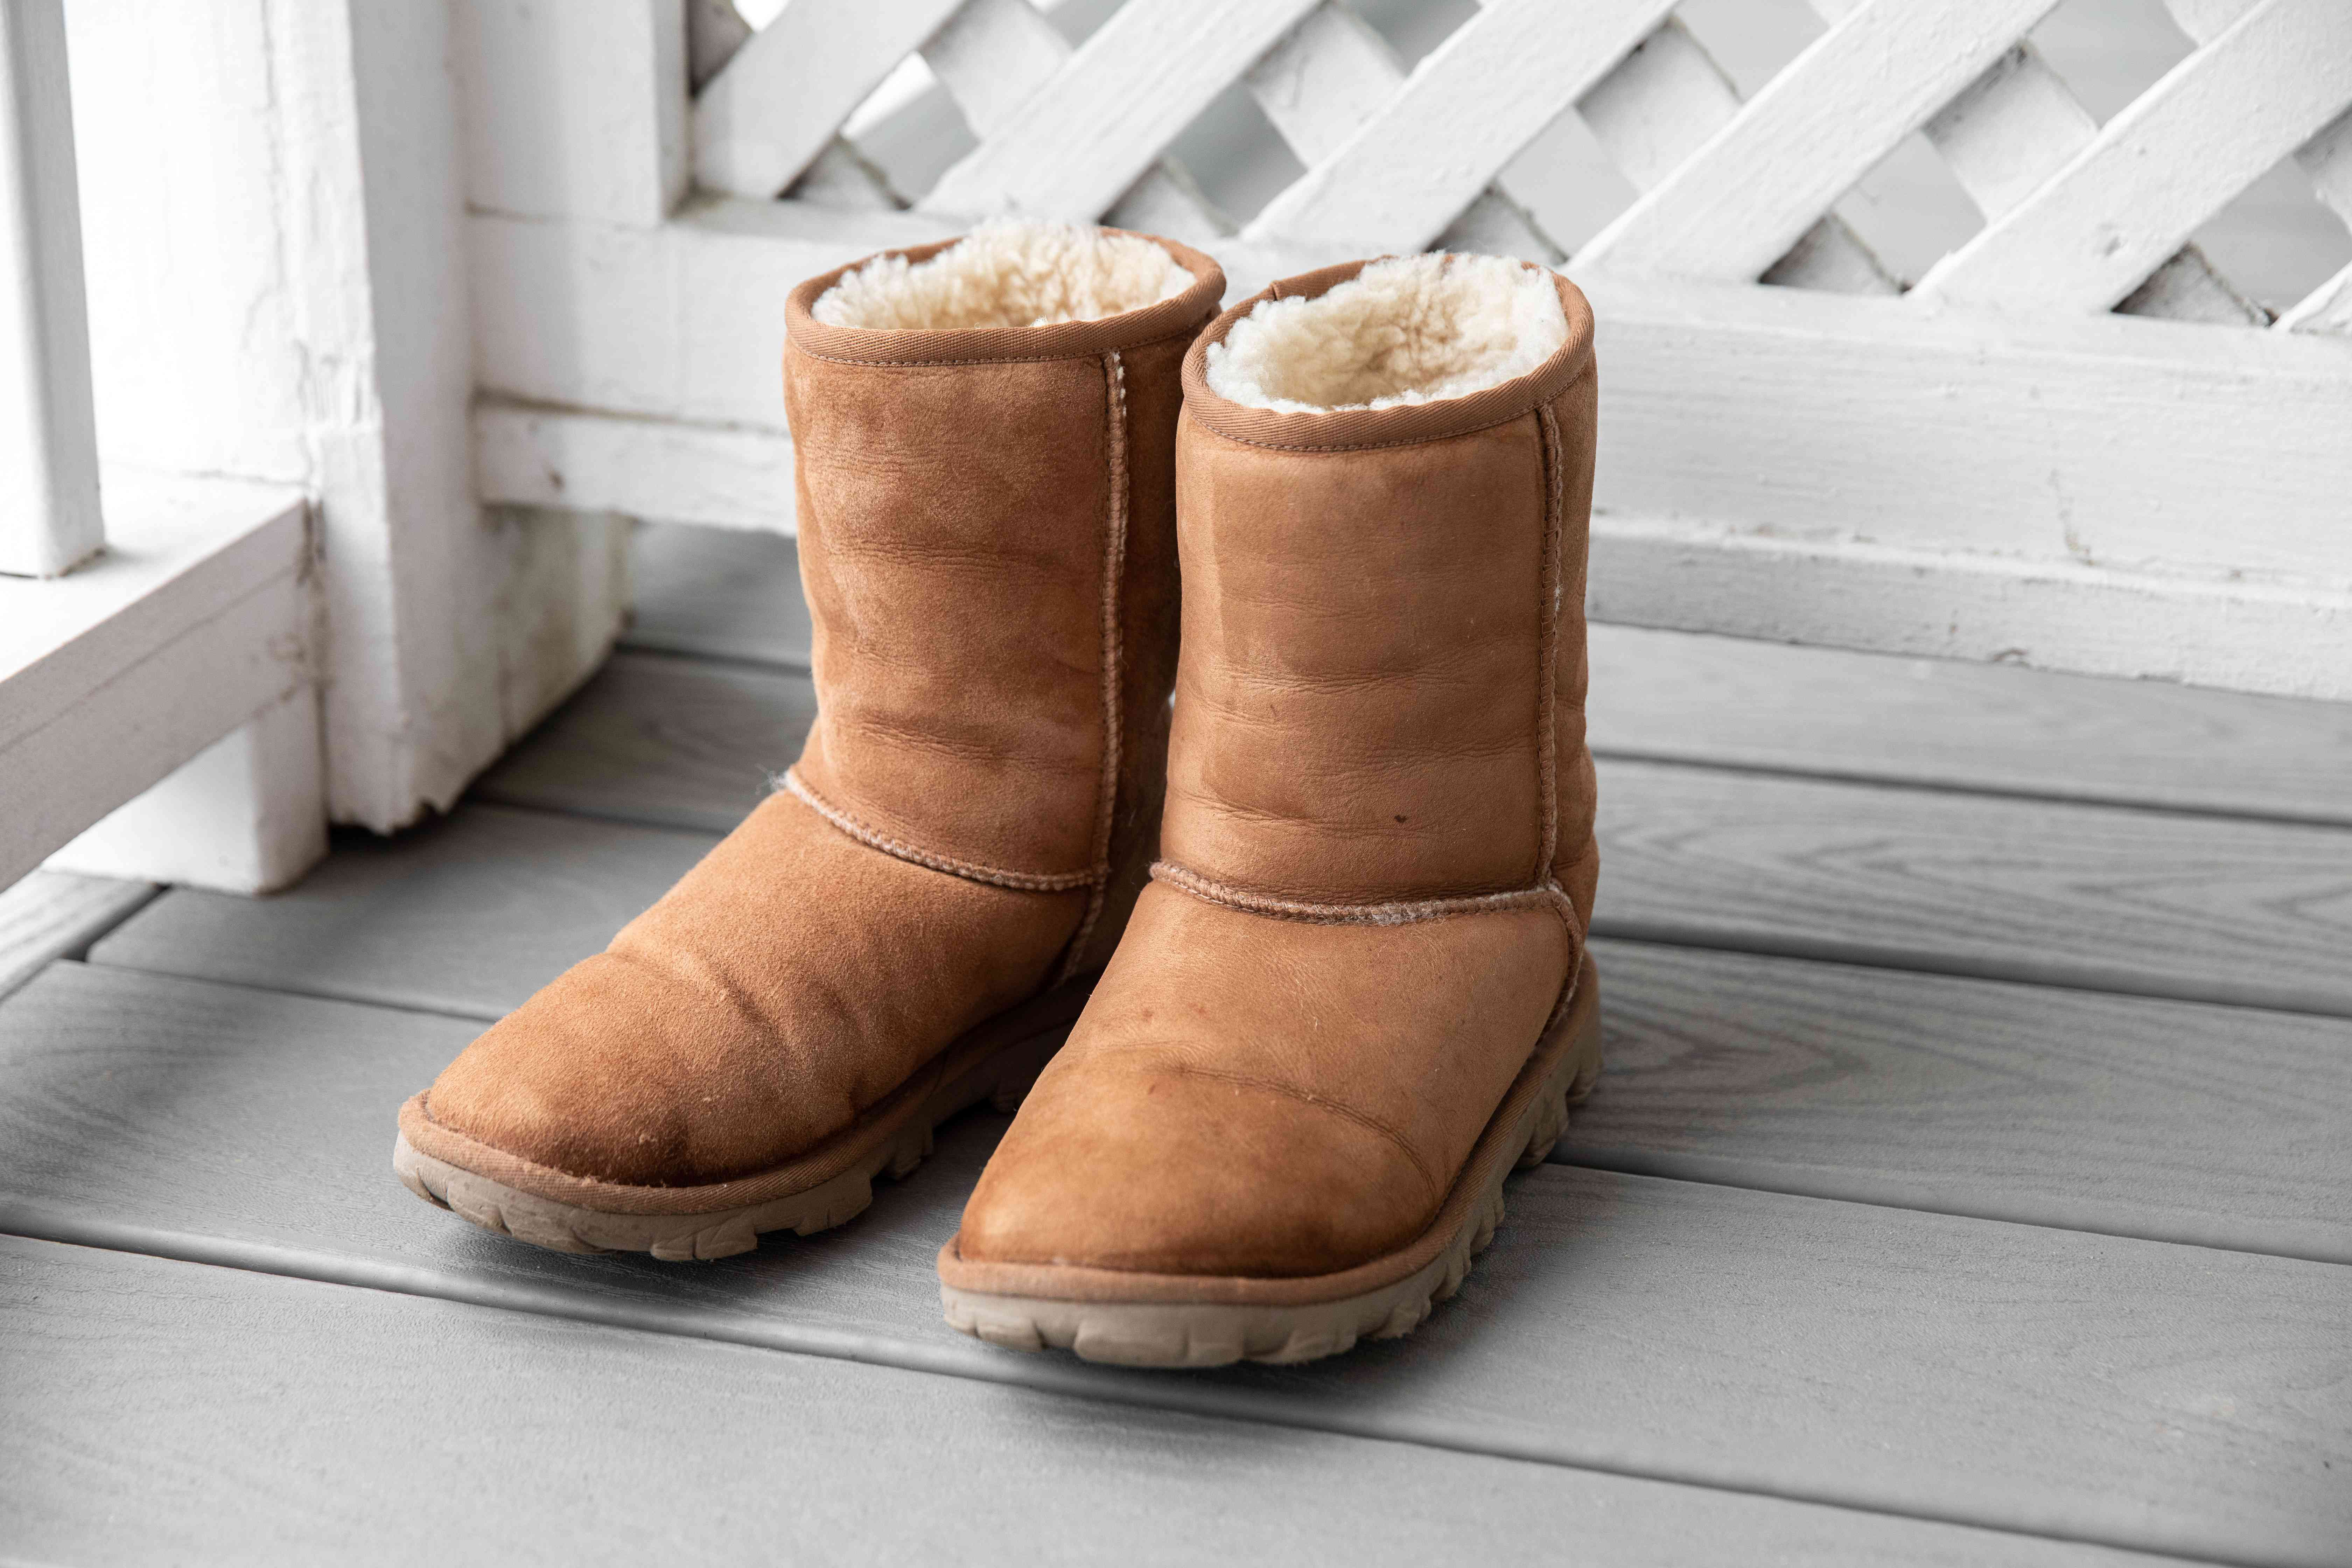 Air drying Ugg boots